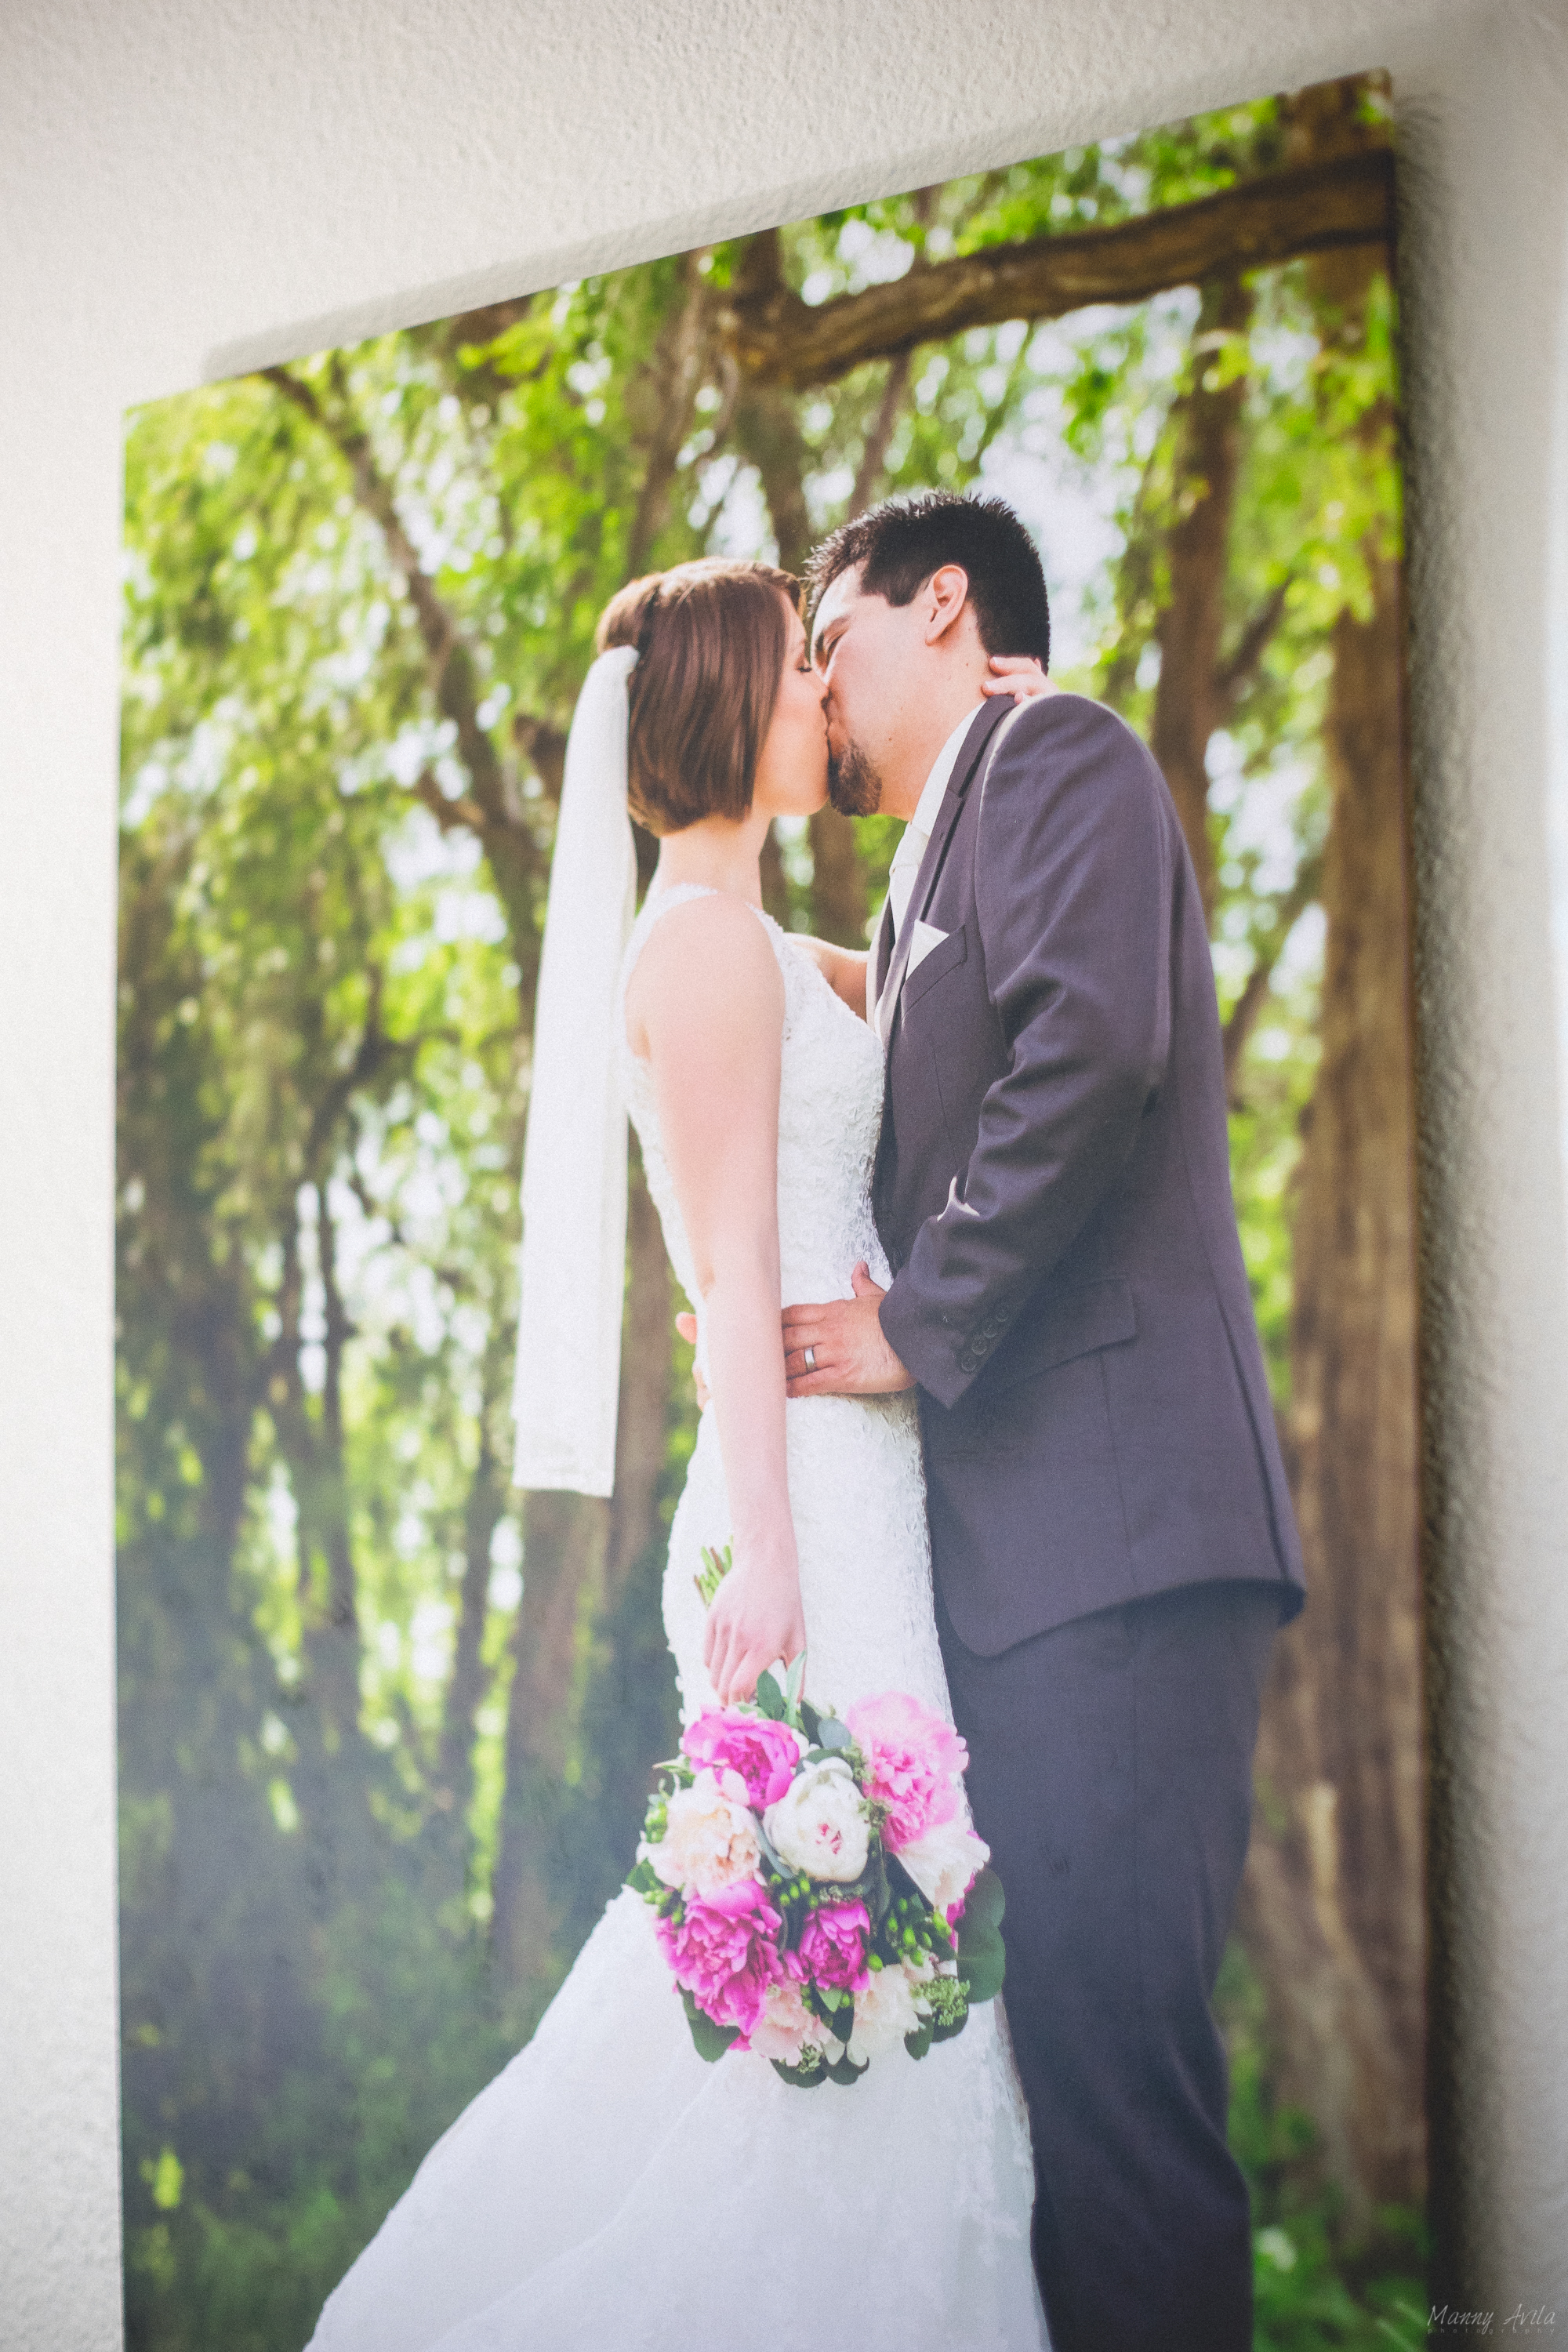 One of the favorite images from Katie and I's wedding. This one is in our bedroom and it reminds us daily of the best day of our lives and of our awesome relationship.